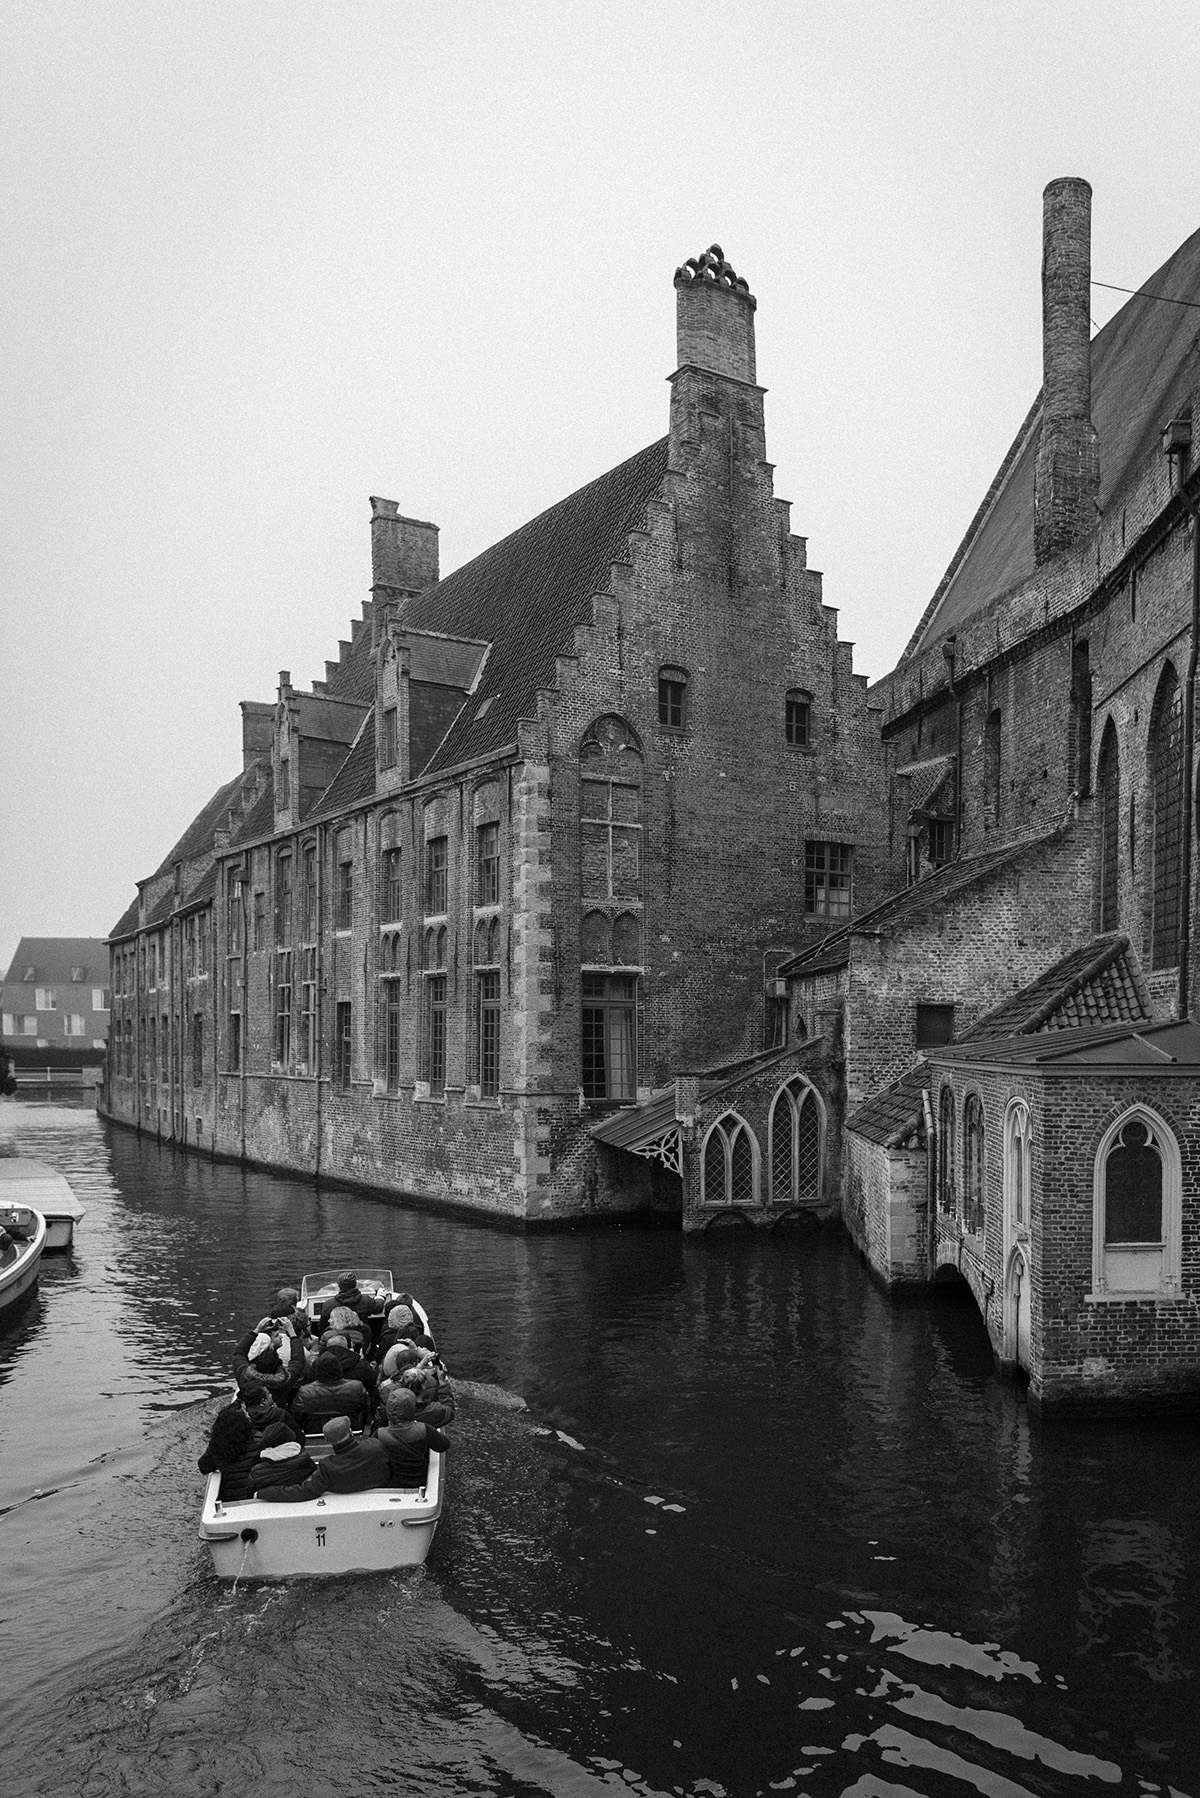 Bruges - black and white photograph - Patricia Martins - Yellowish blog- 2019